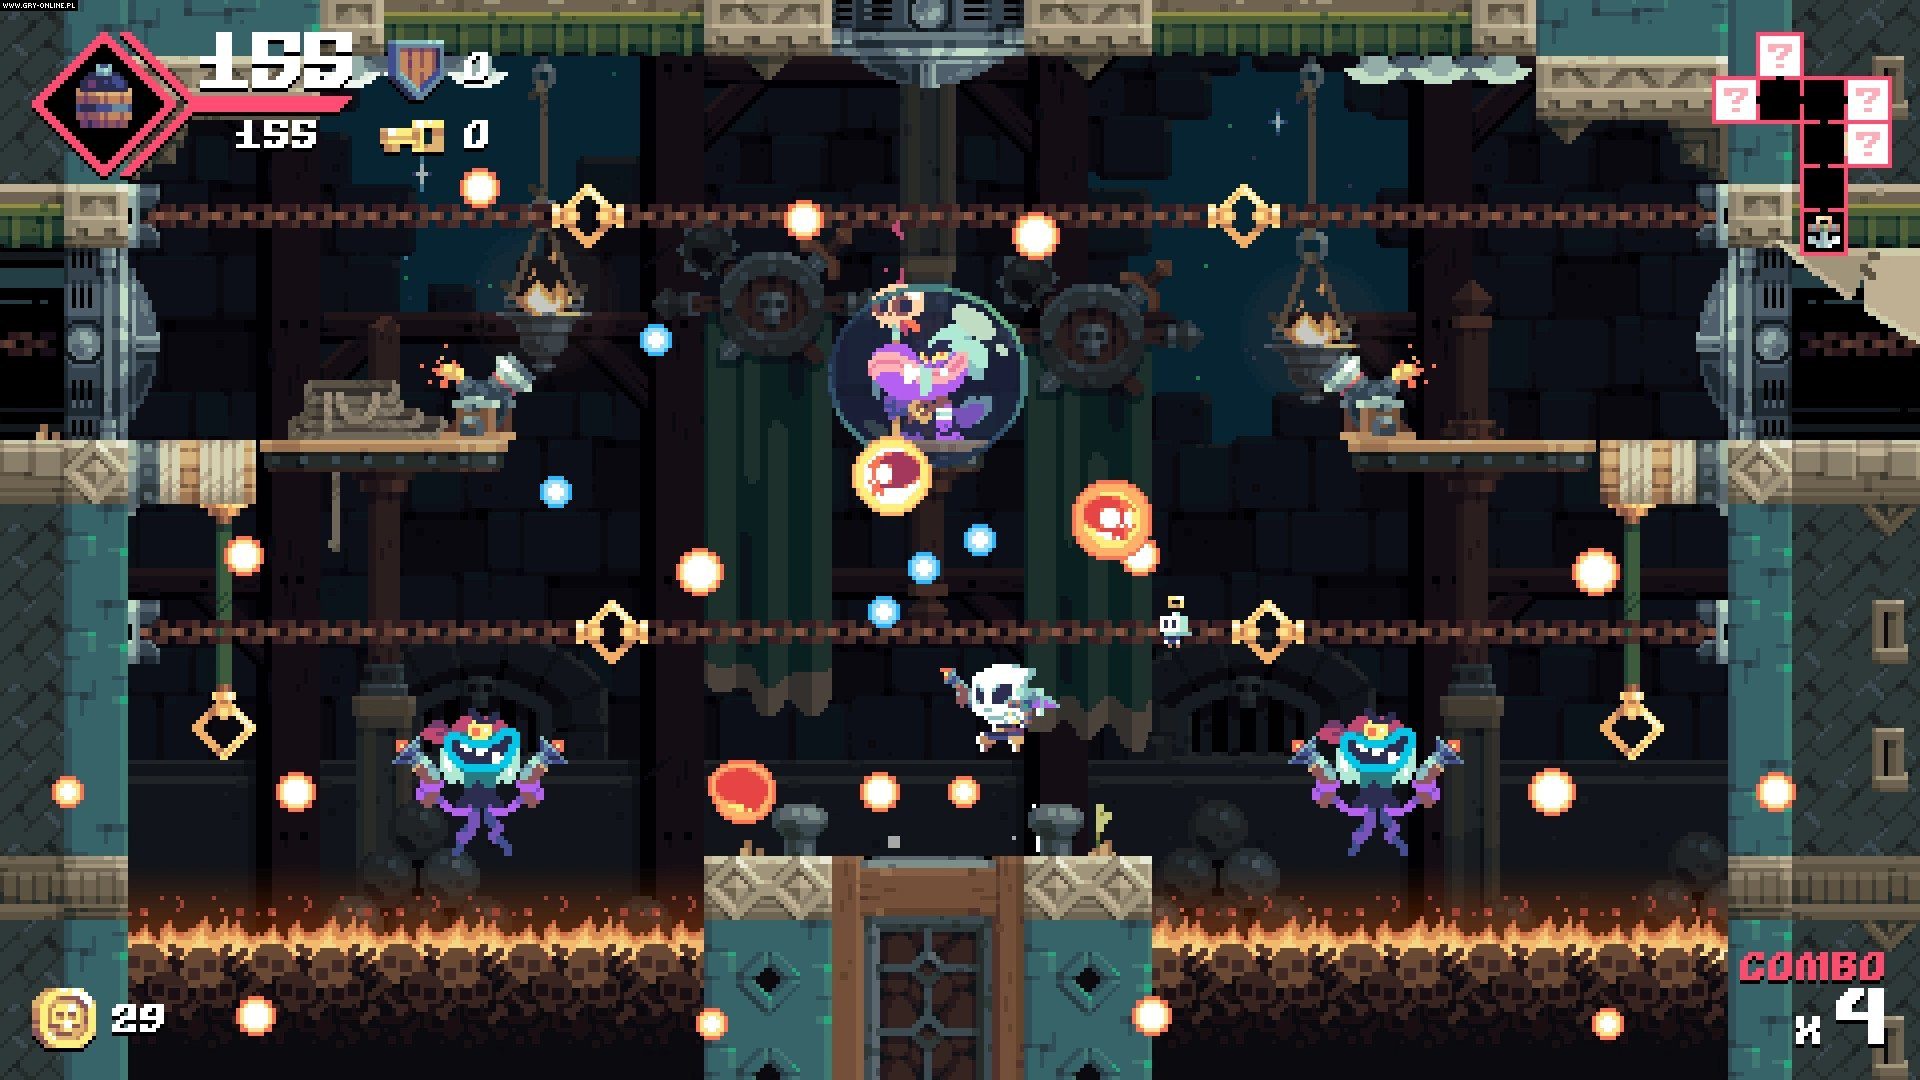 Flinthook PC, PS4, XONE, Switch Games Image 8/8, Tribute Games